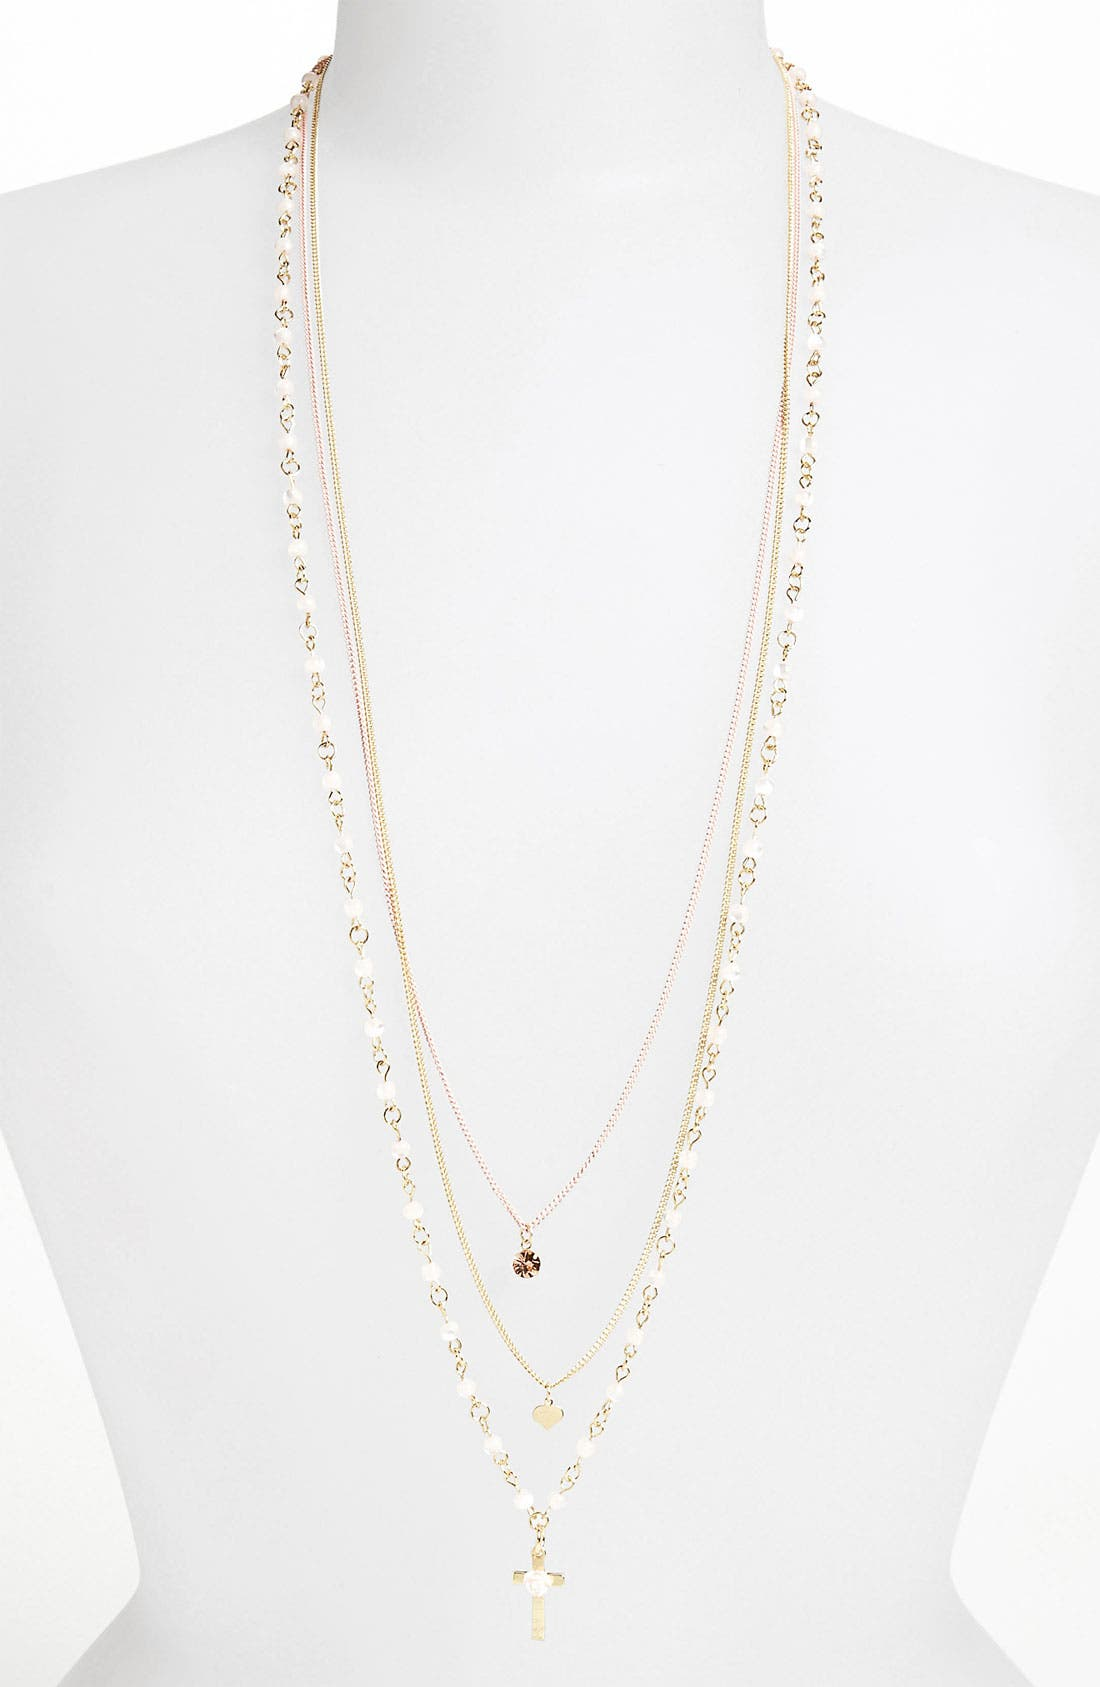 Alternate Image 1 Selected - Topshop '3 Row Charm' Multistrand Necklace